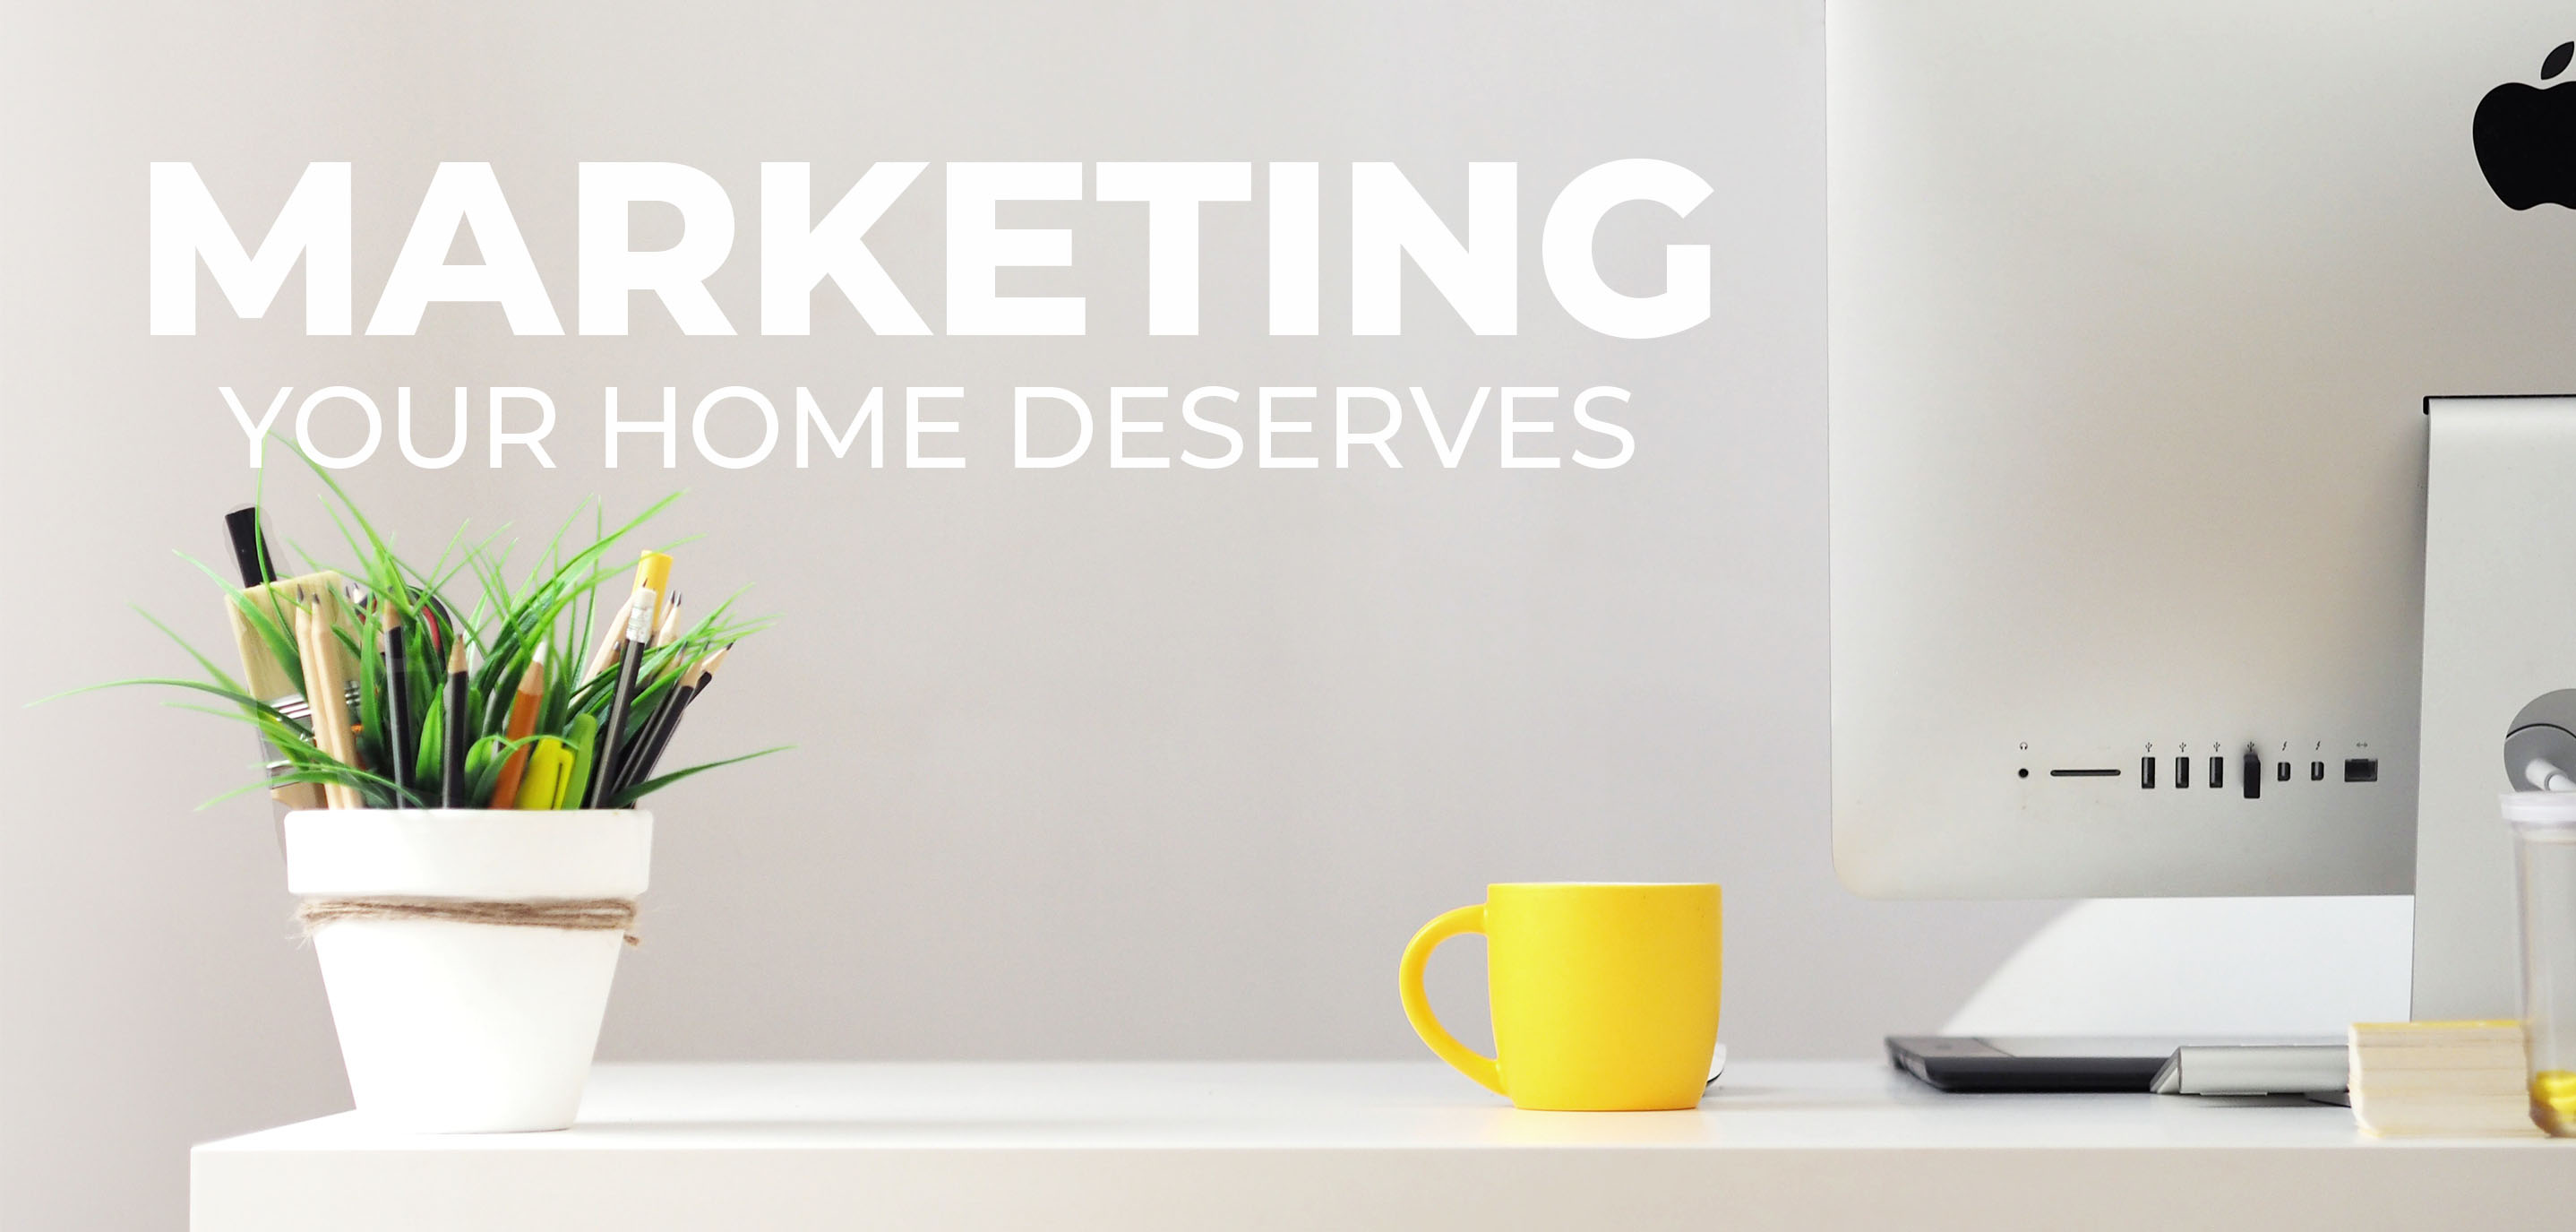 Marketing Your Home Deserves